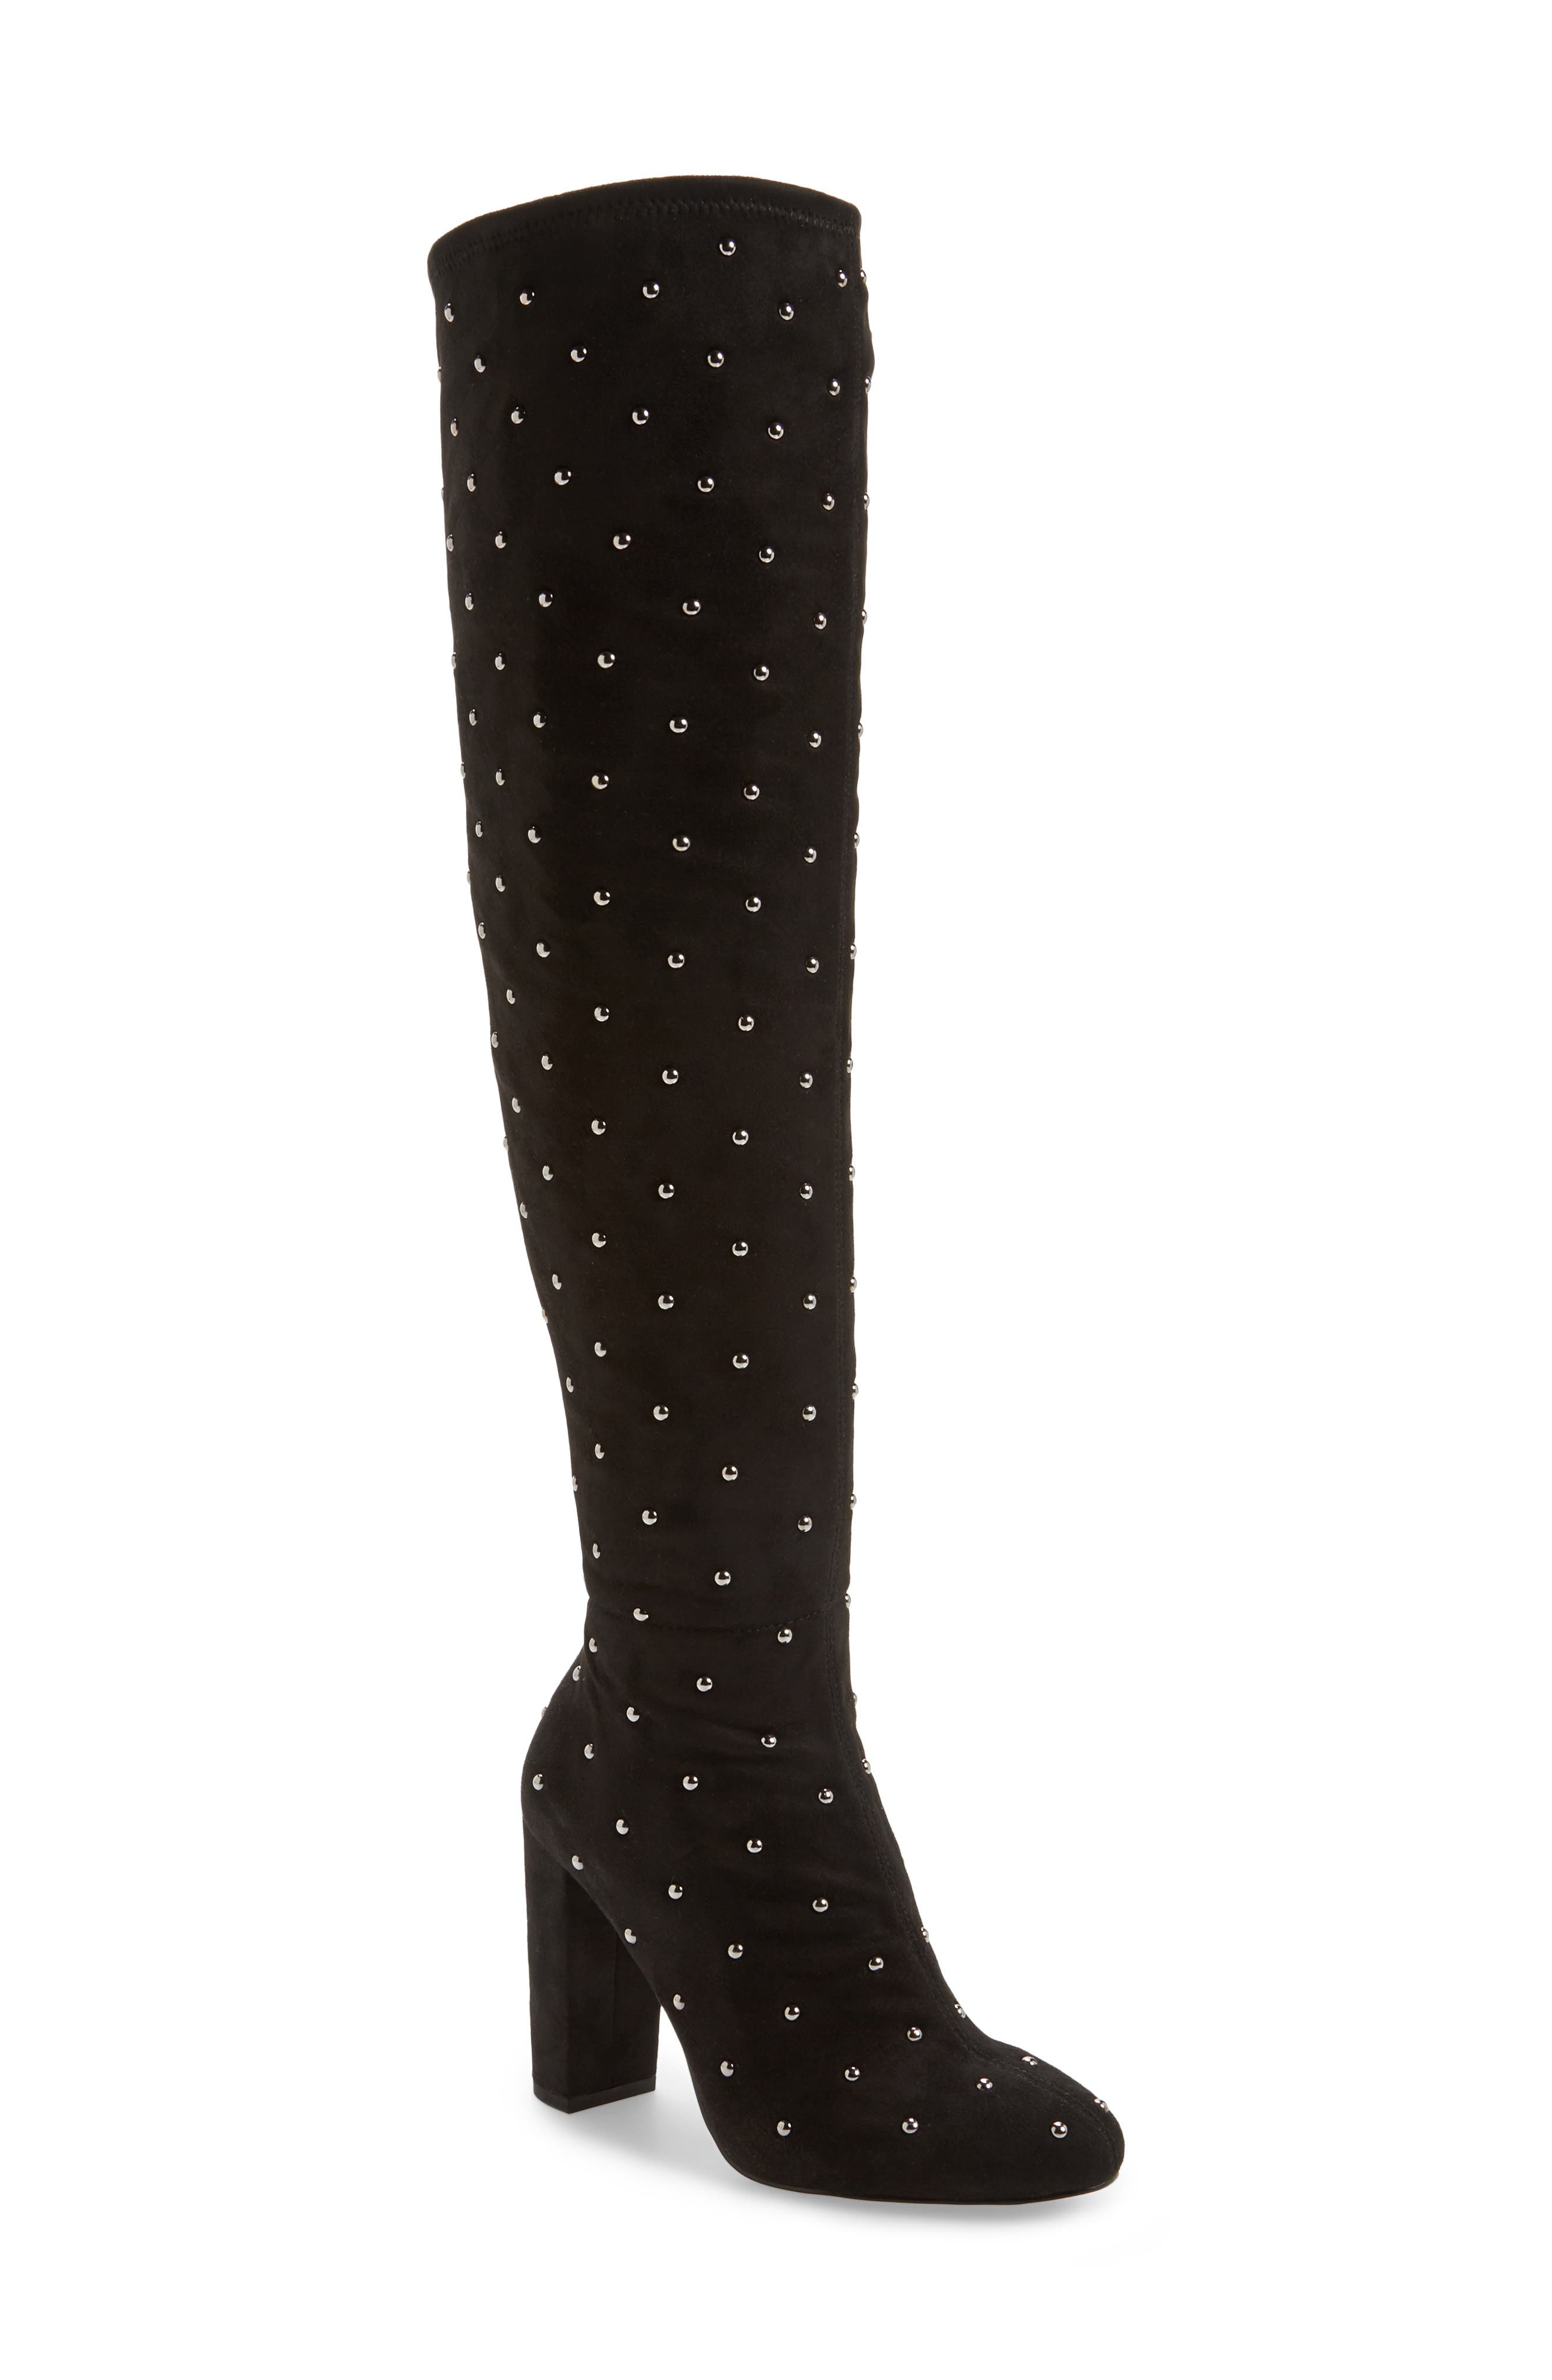 Bressy Studded Over the Knee Boot,                             Main thumbnail 1, color,                             001